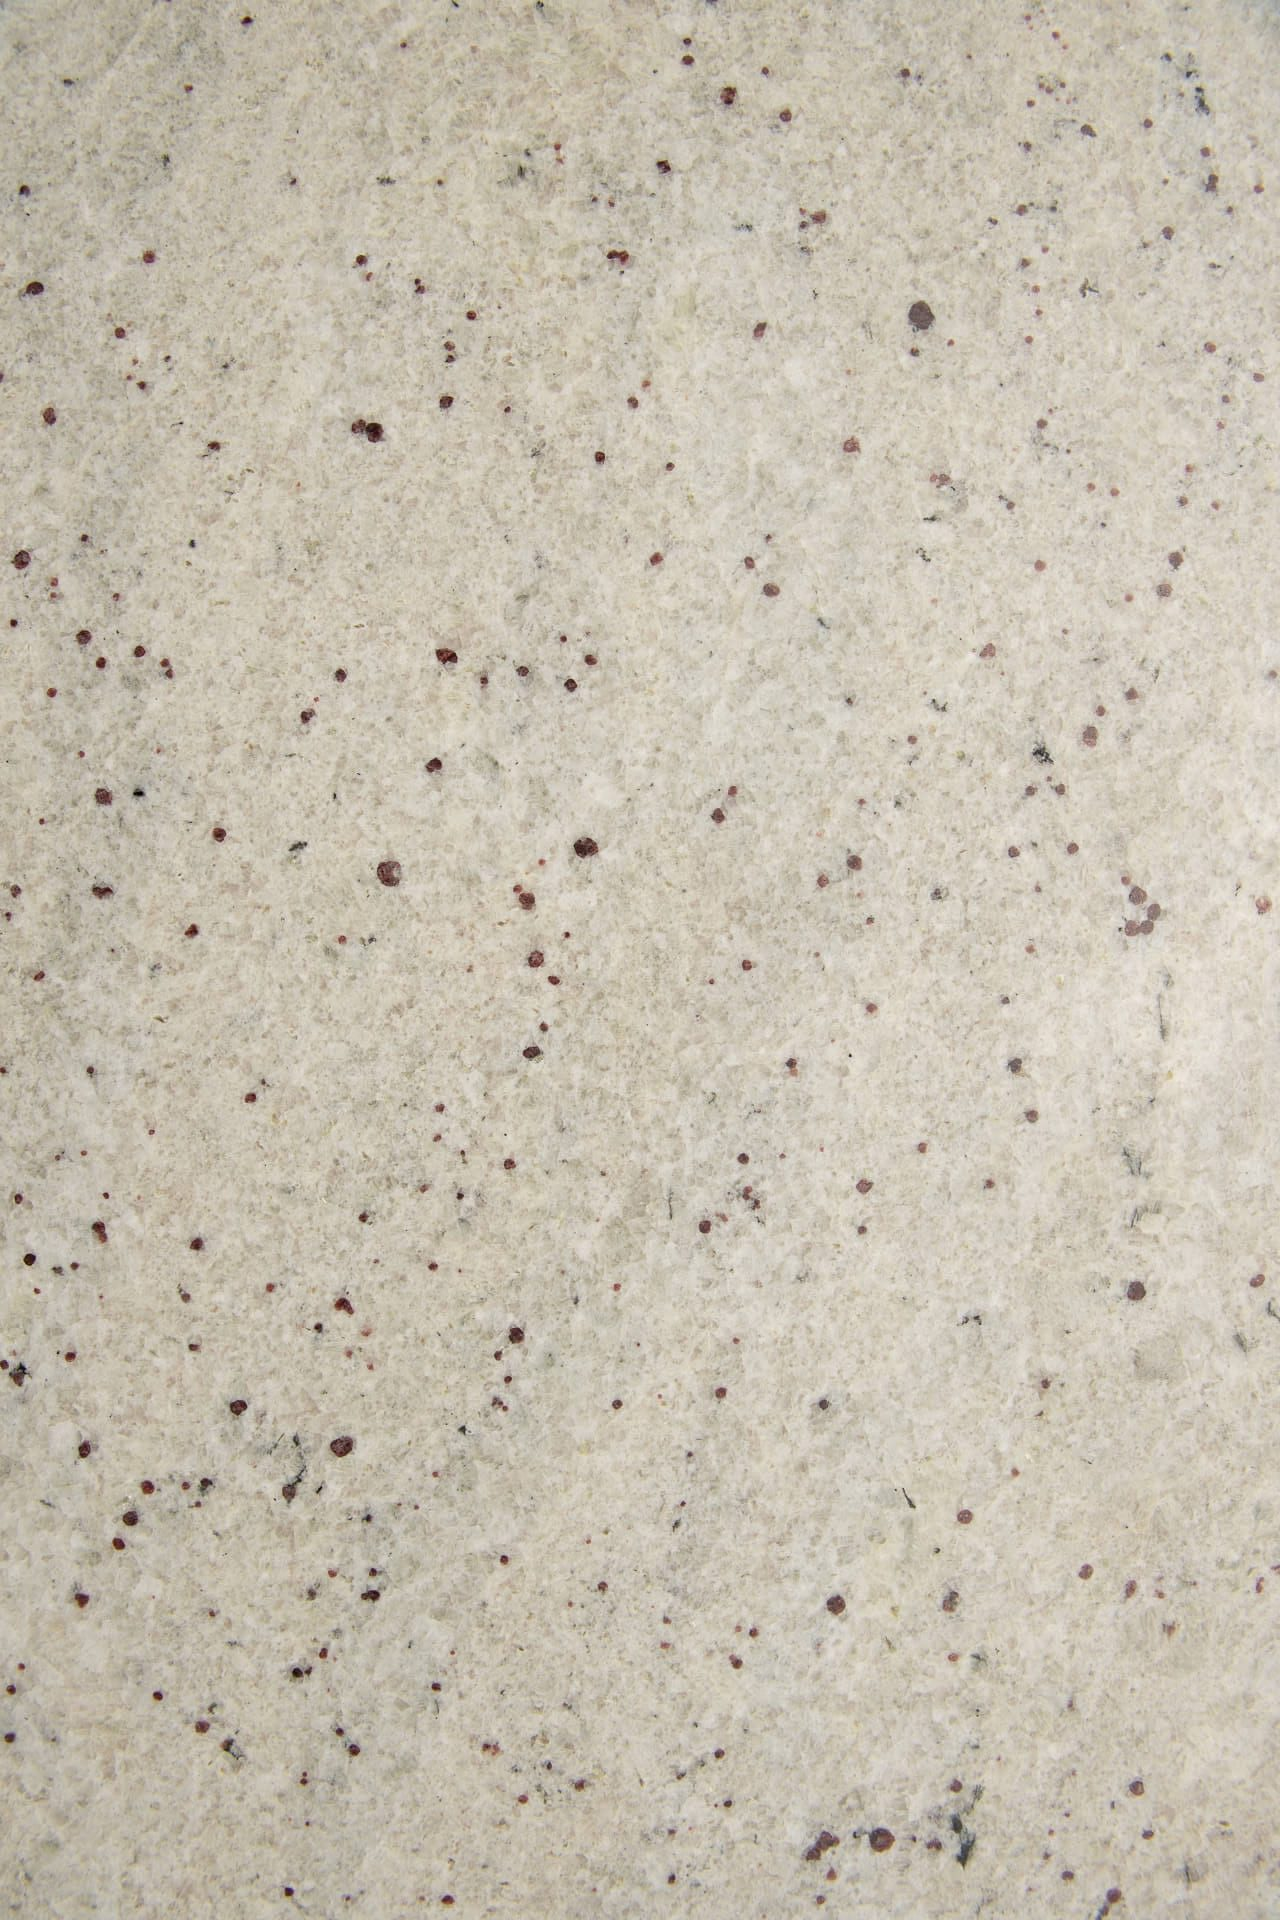 colonial white 2 cu countertop - by Magnolia Countertops. A Countertop fabricator of Granite Countertops, Marble Countertops, and Quartz Countertops in Cookeville and Crossville TN.